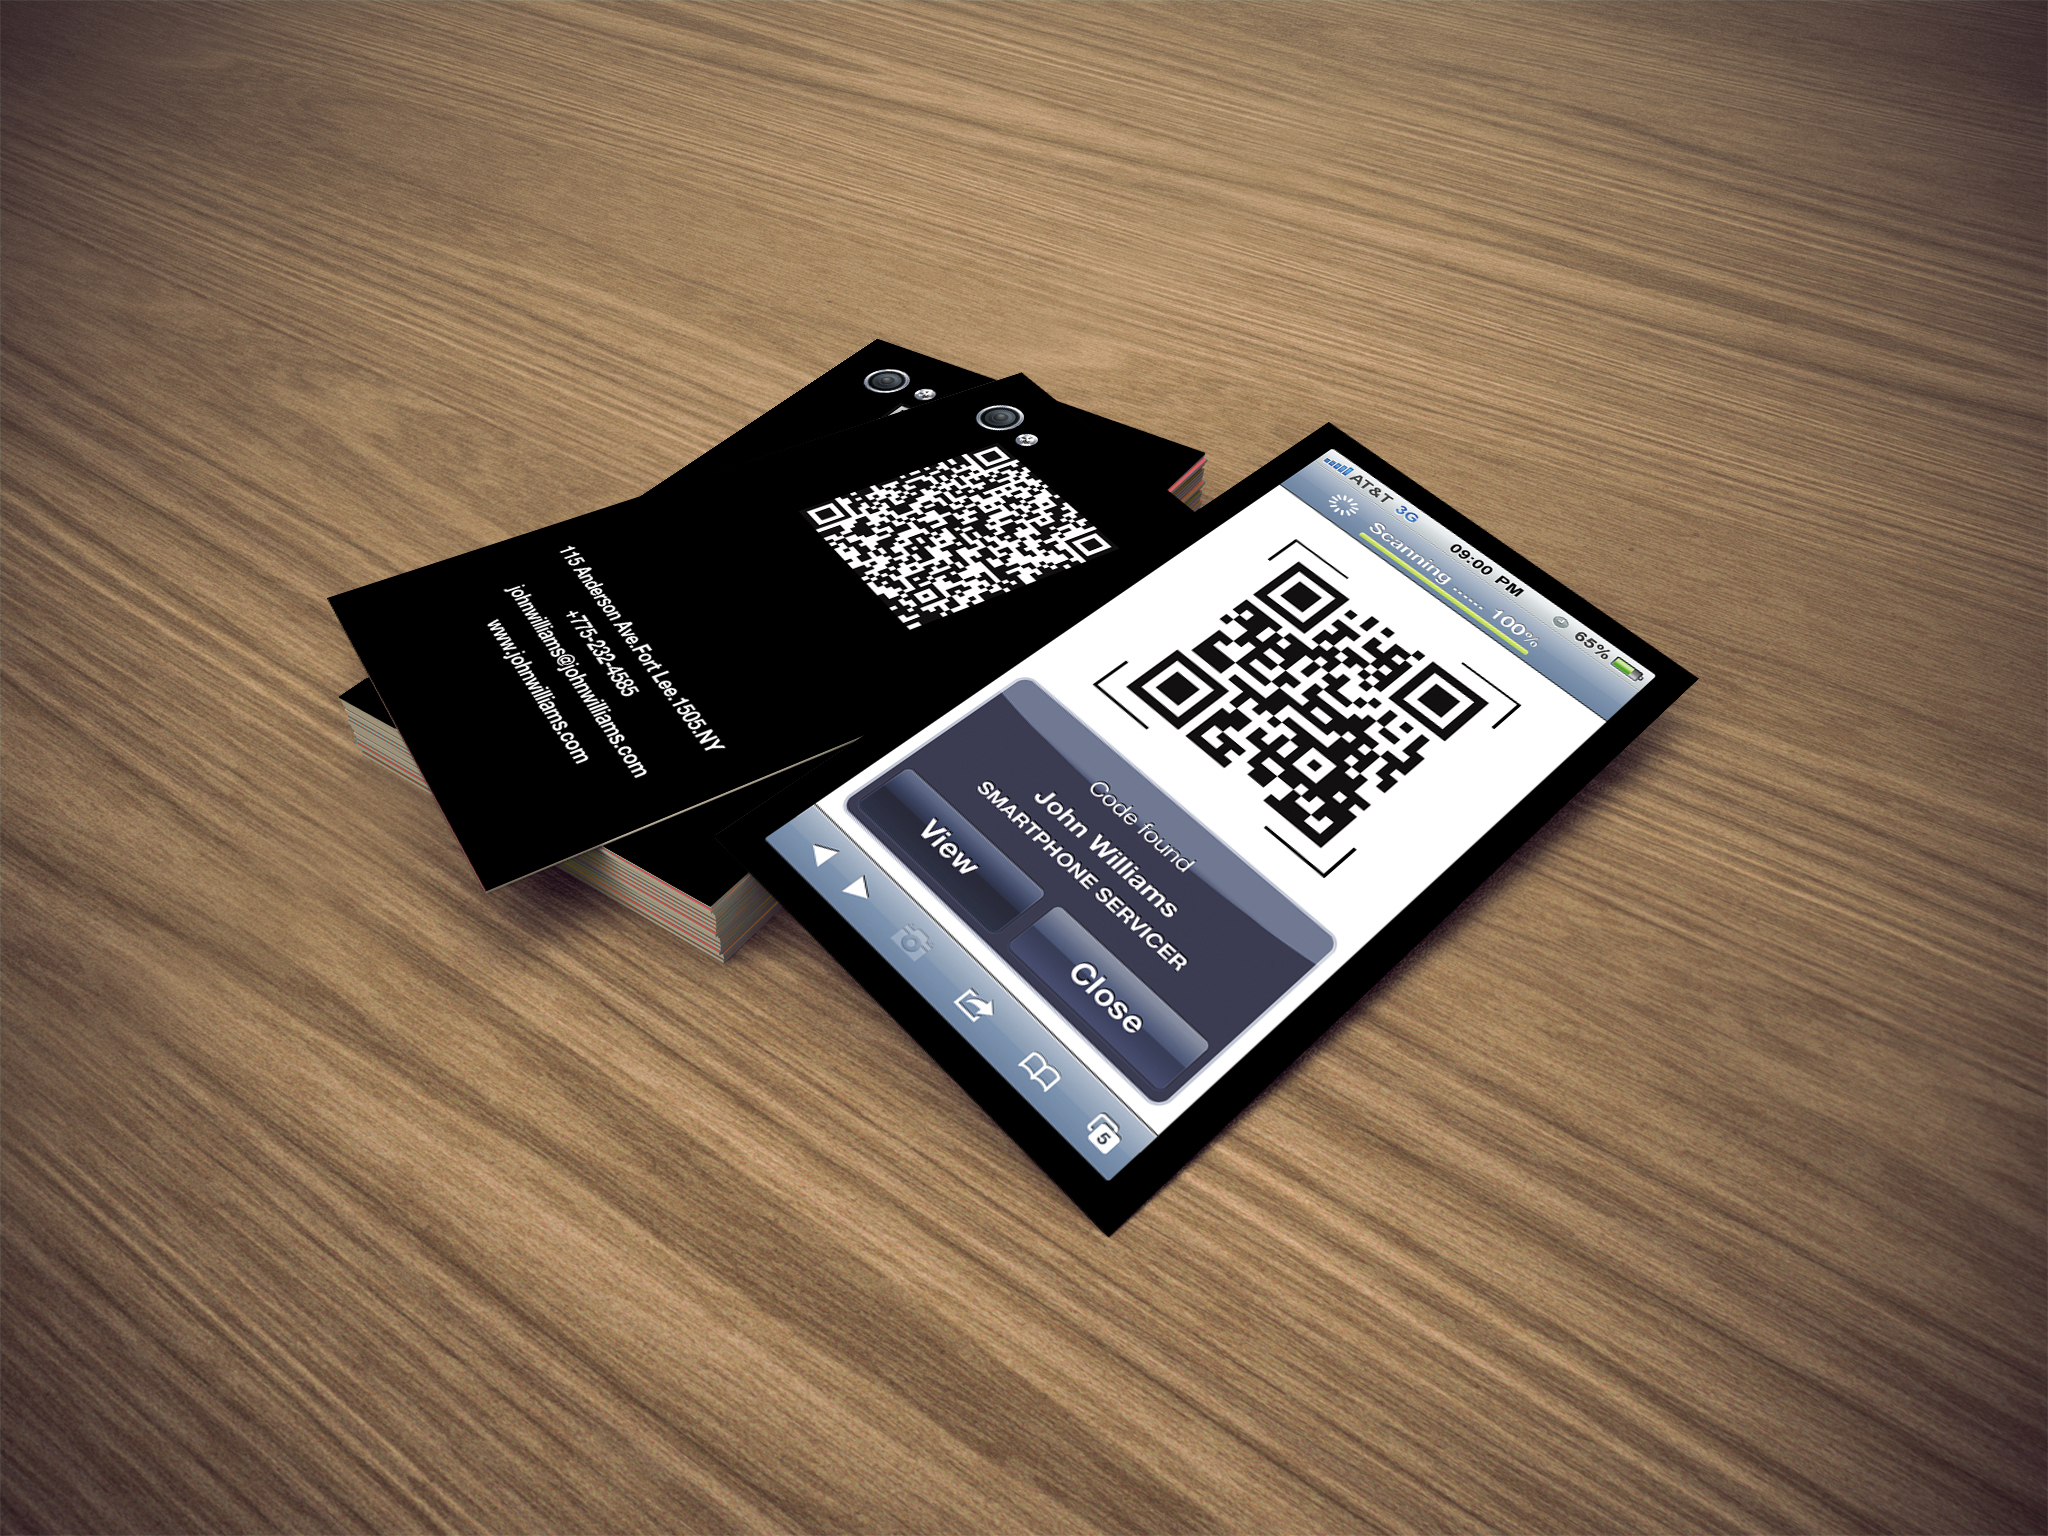 Beautiful e business card app photos business card ideas etadamfo amazing business card iphone app pictures inspiration business cheaphphosting Image collections